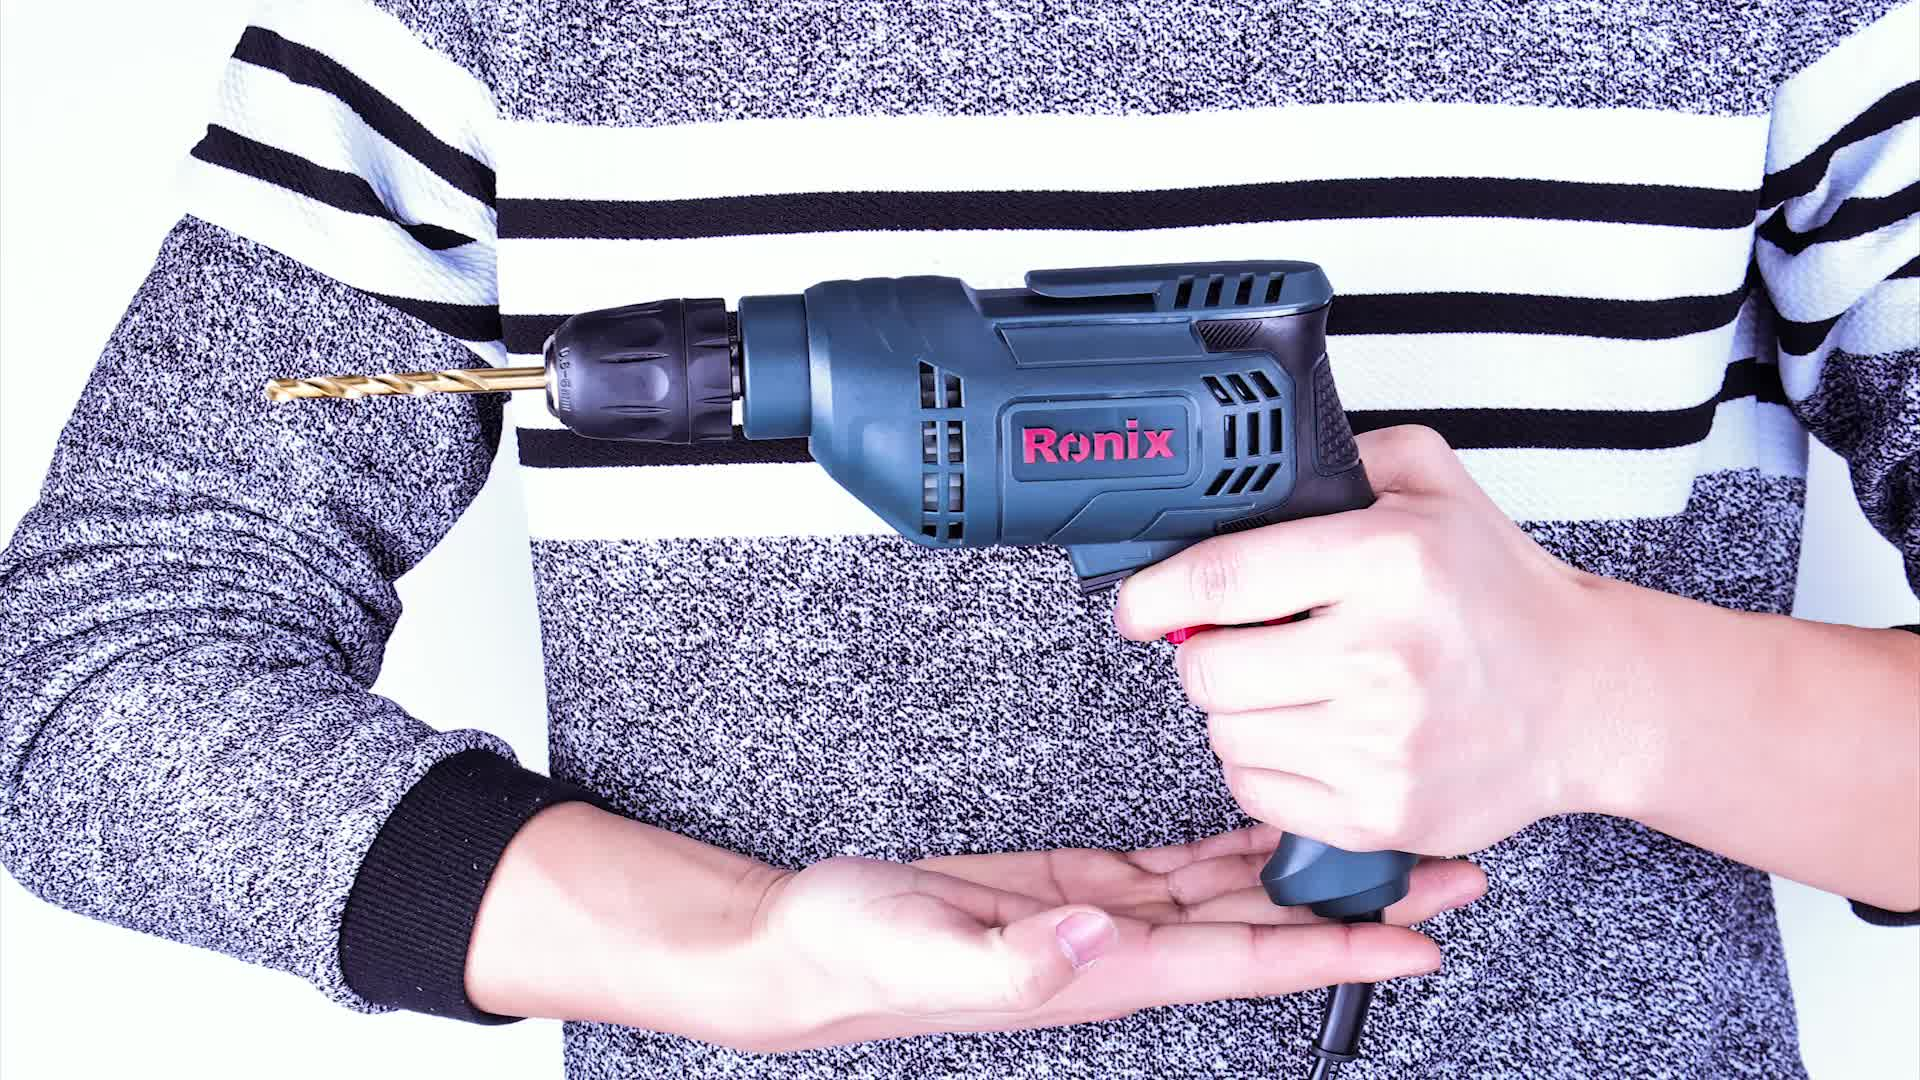 Ronix Latest High Quality 6.5mm Electric Drill 400W Corded Drill 2107A Power TOOL